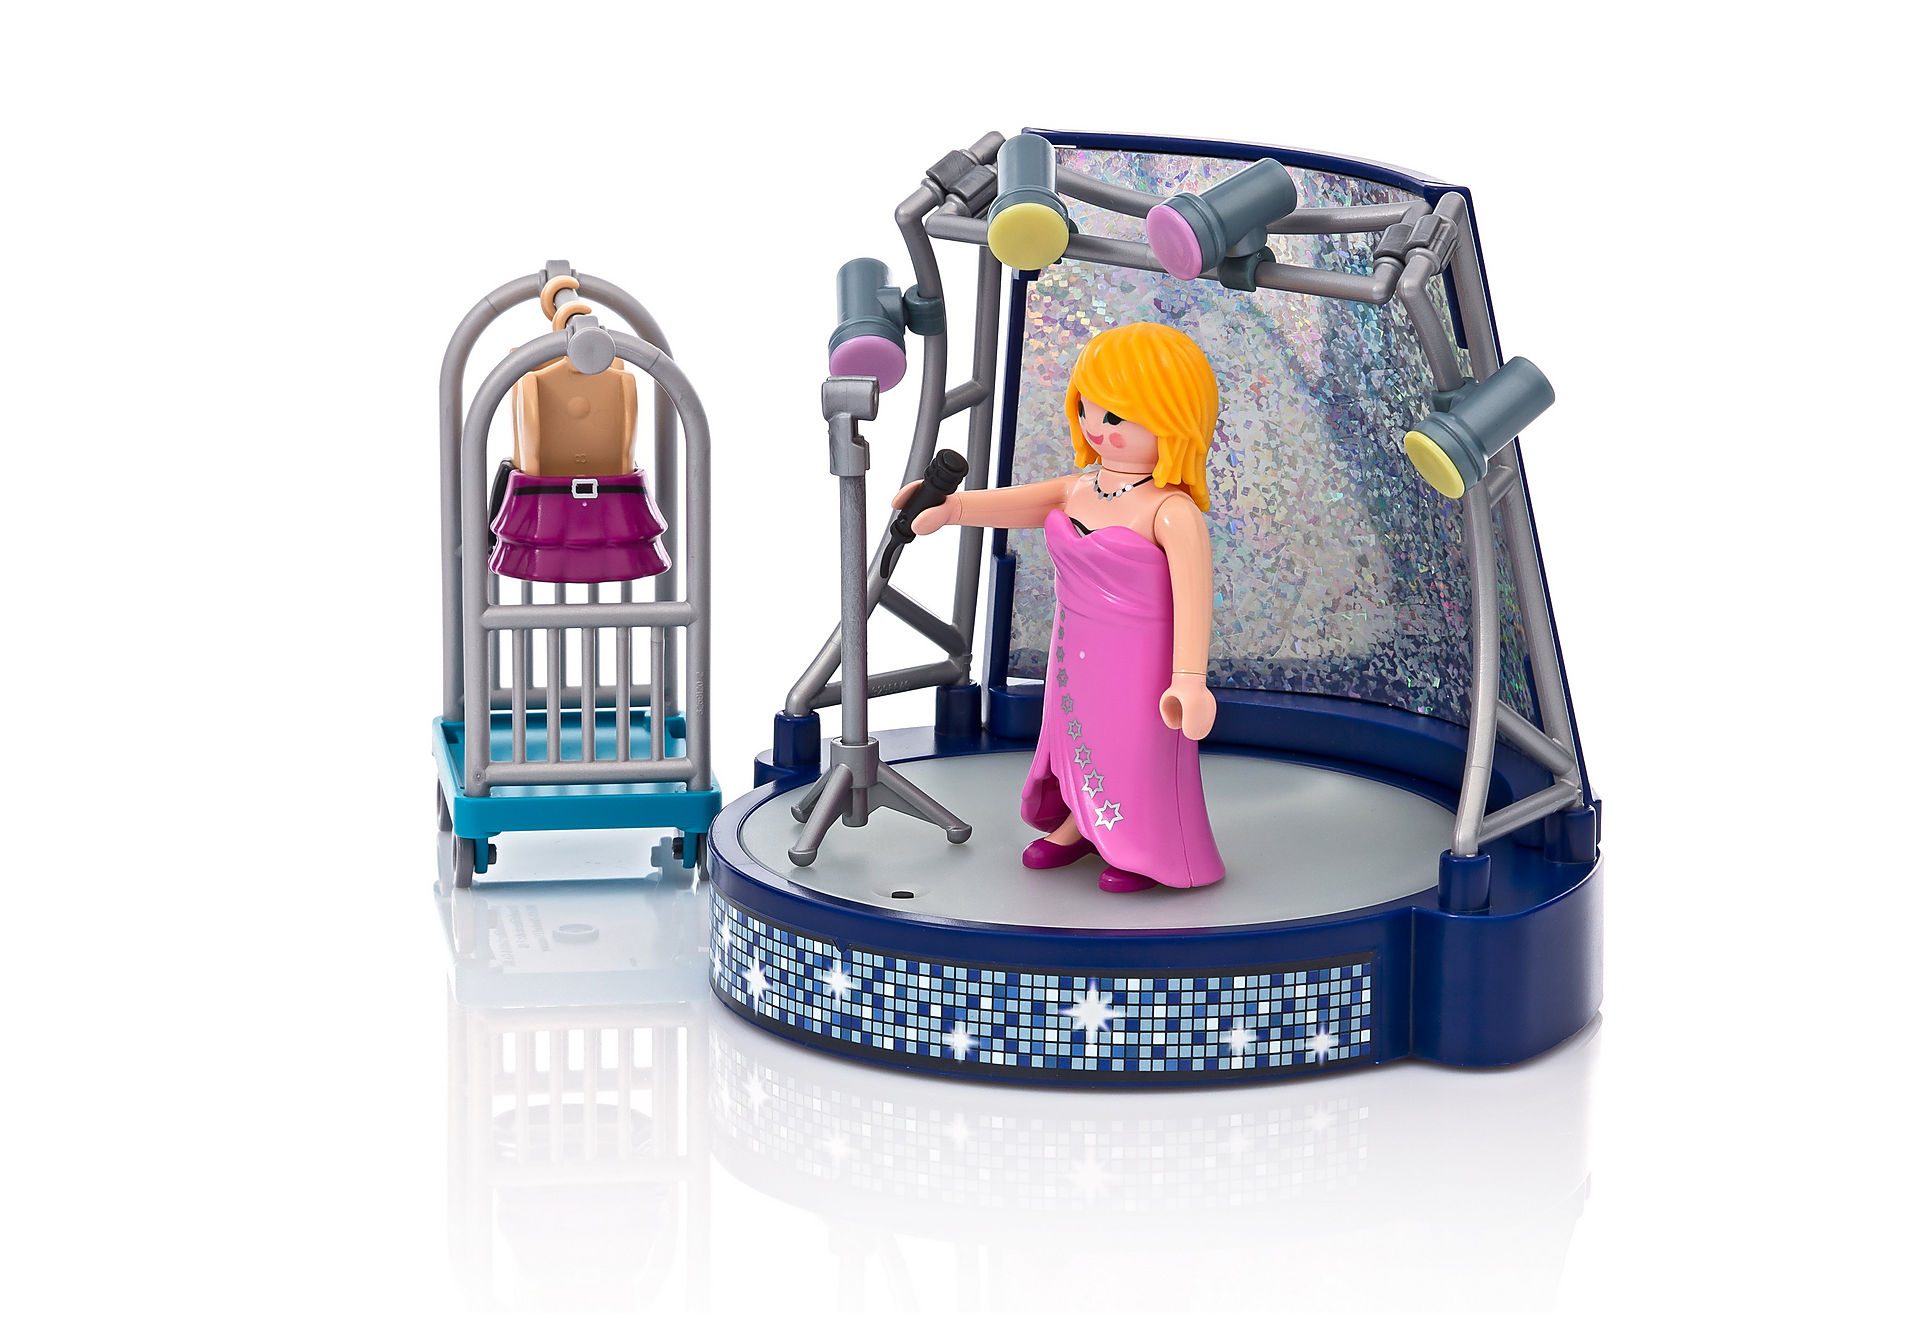 360degree image 6